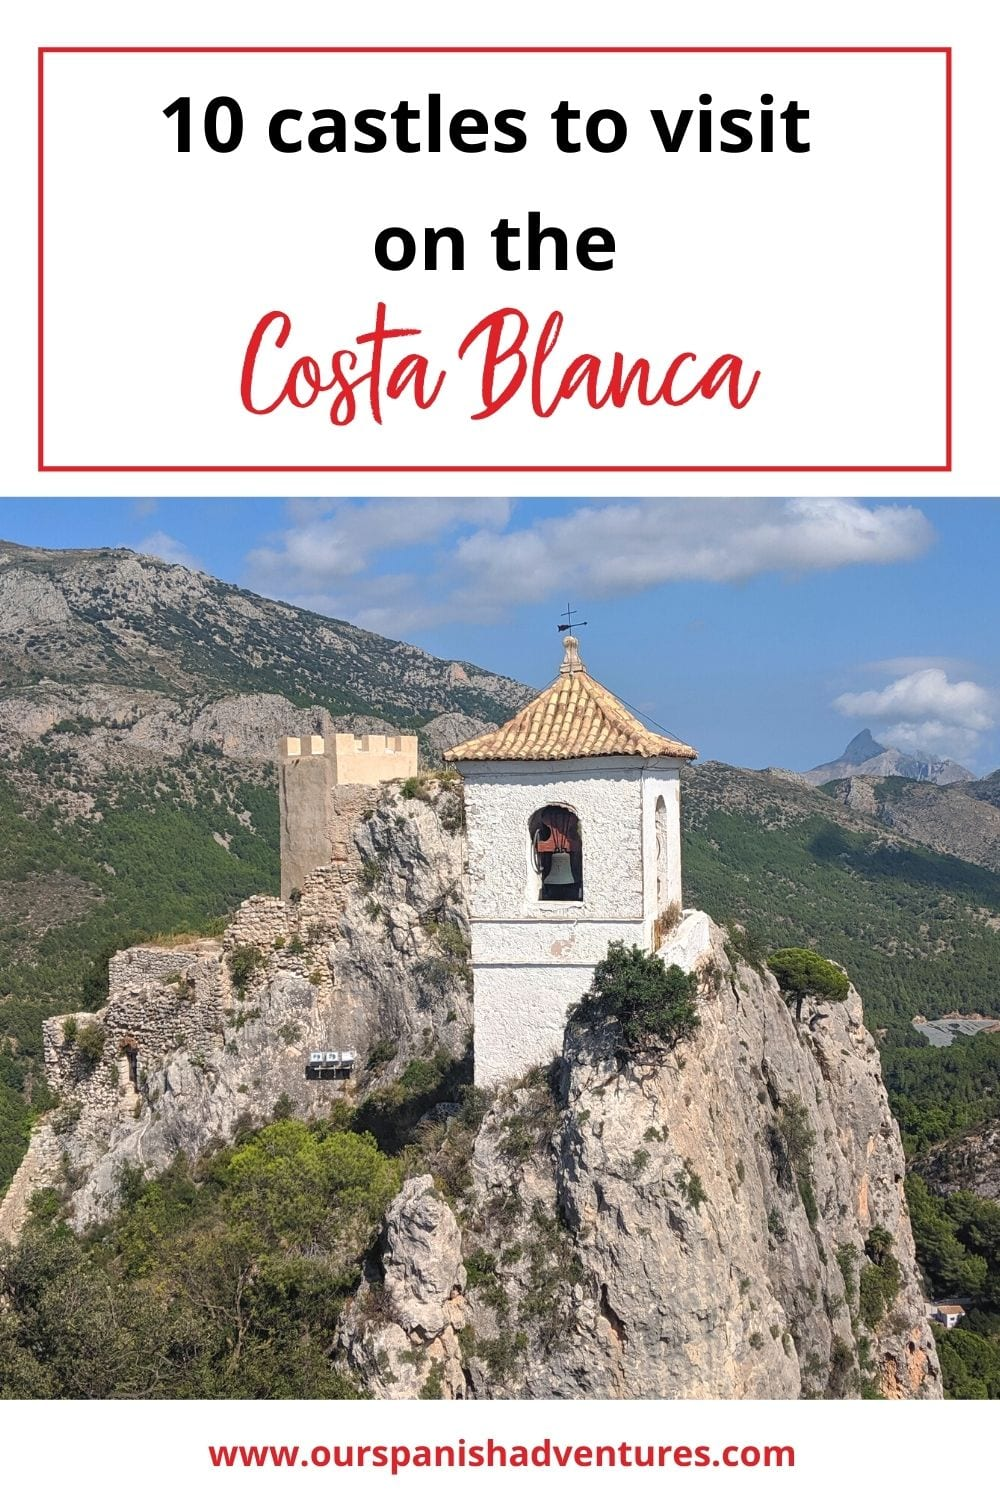 10 castles to visit on the Costa Blanca | Our Spanish Adventures